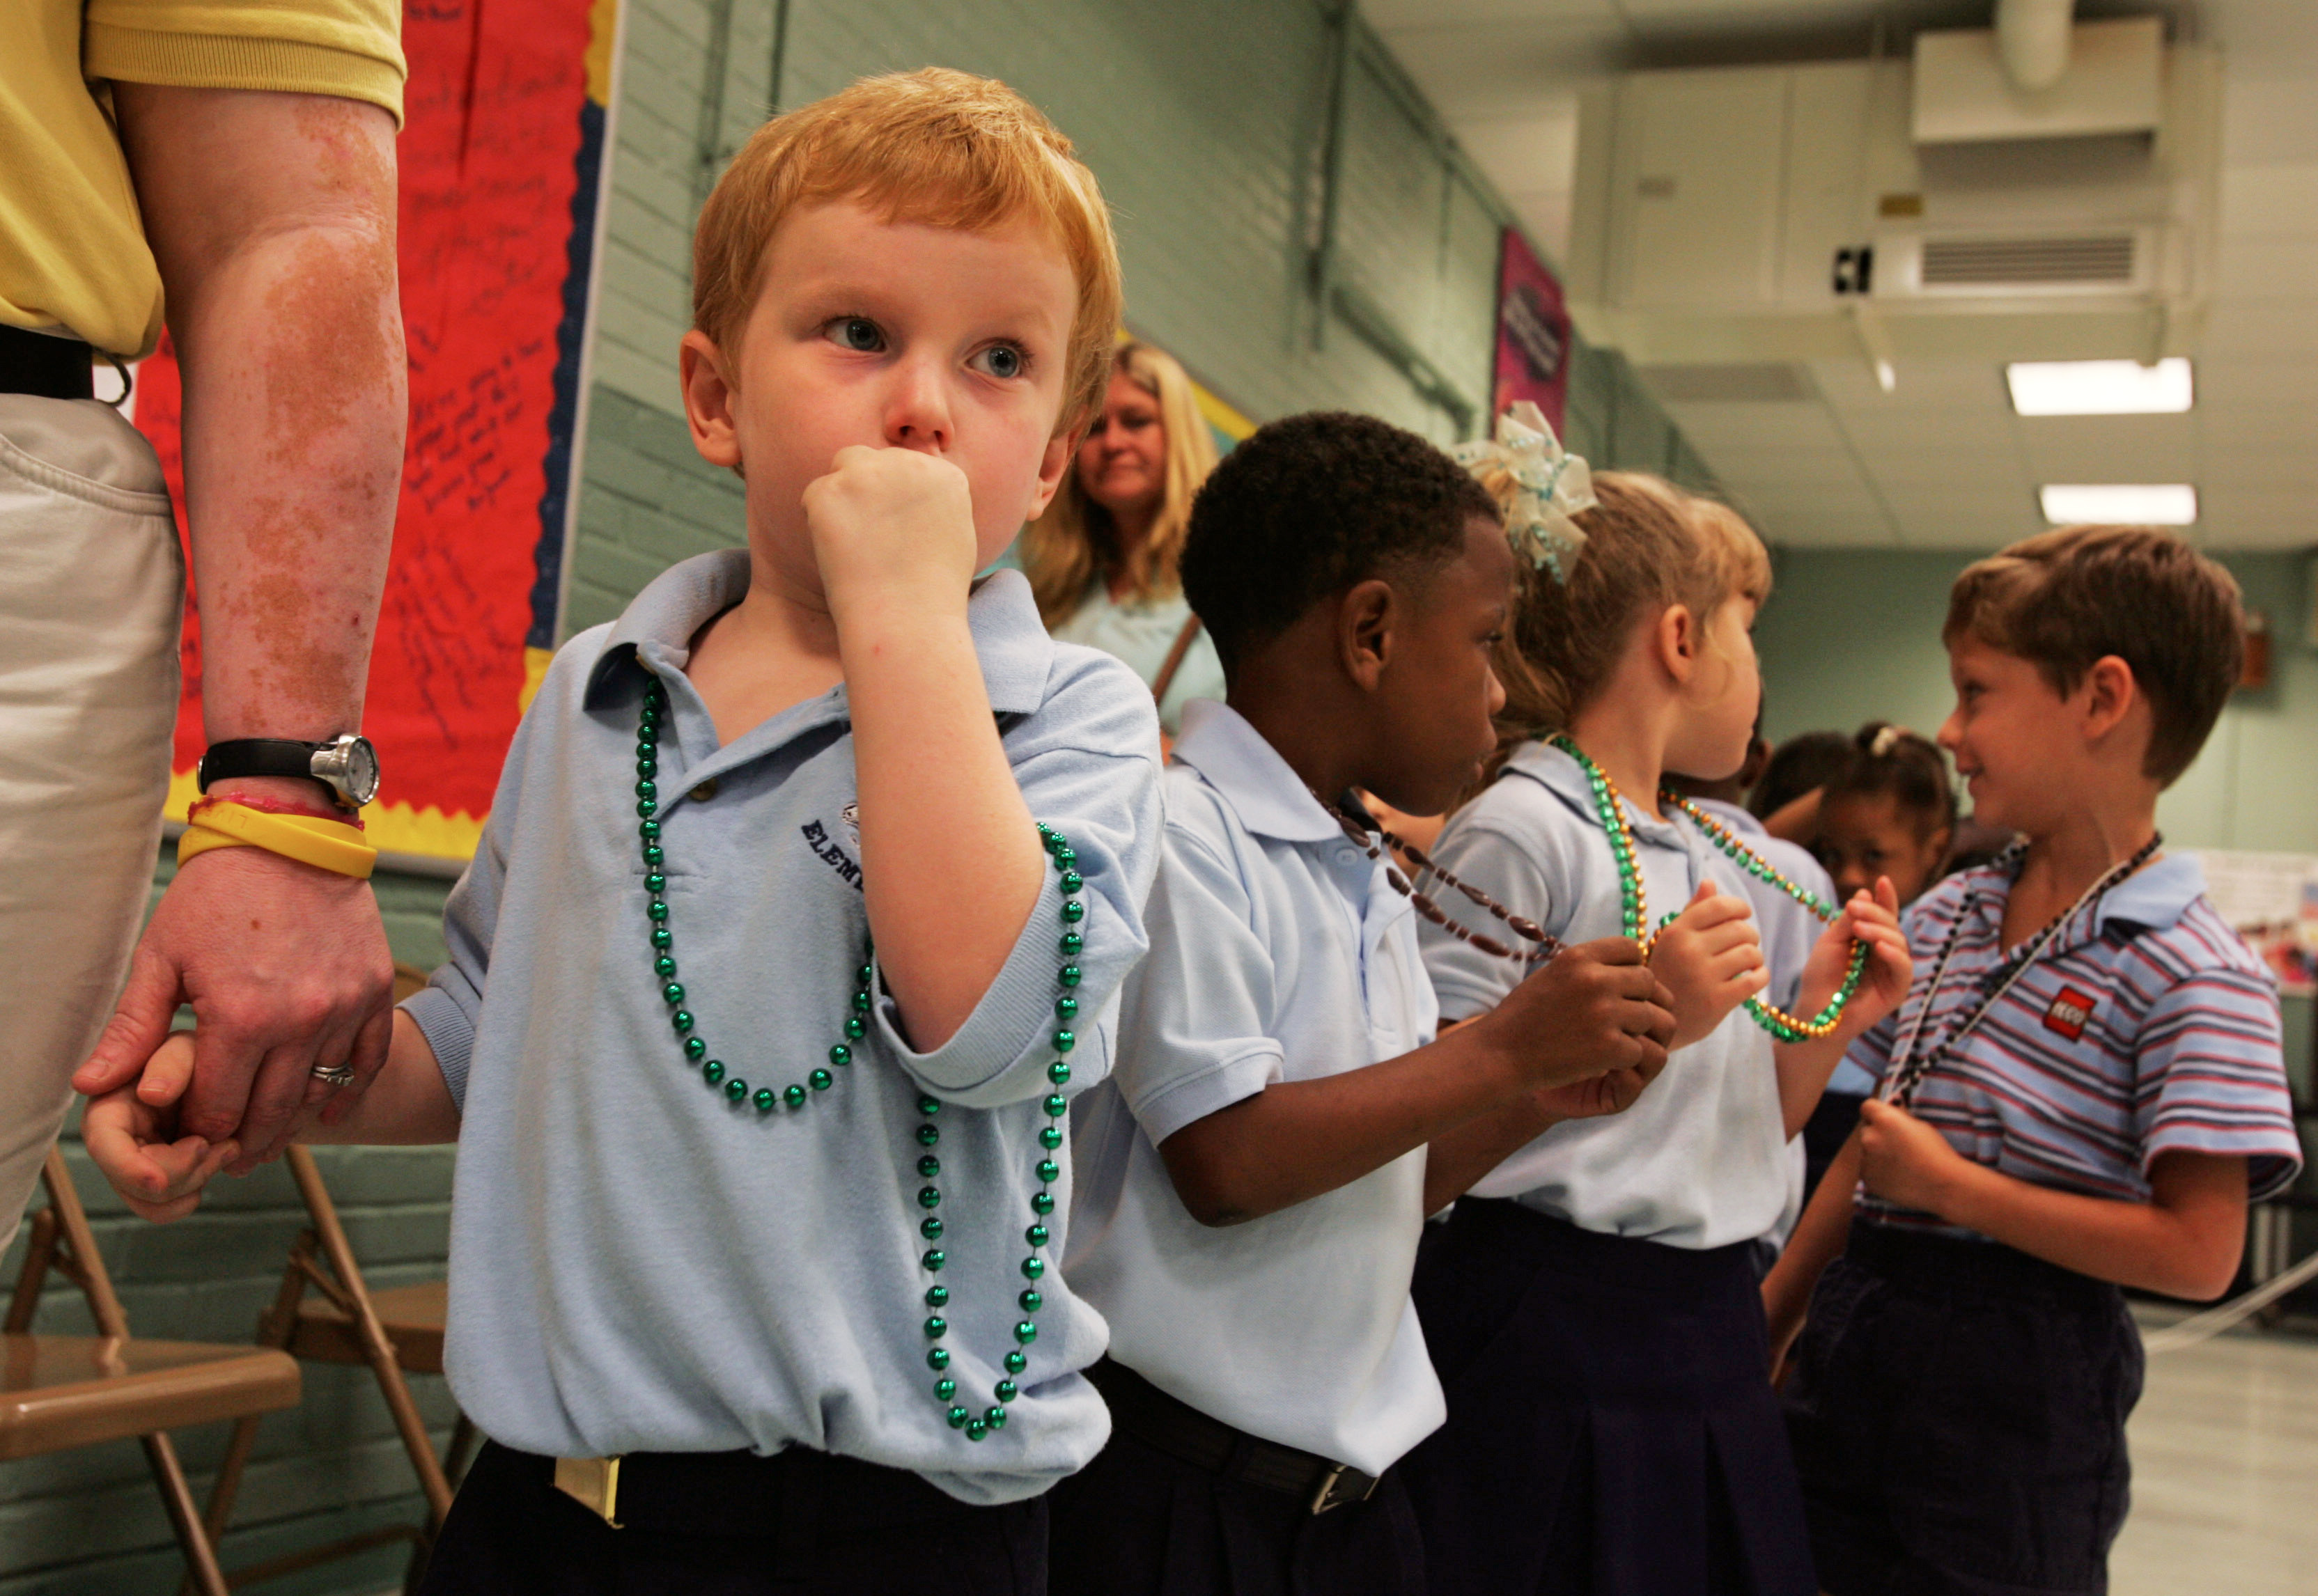 Pre-schooler Cecil Smith (L), 4, holds the hand of a teacher's assistant as he prepares to go to class after he and classmates were given Mardi Gras beads, on the first day of school since Hurricane Katrina hit over a month ago, at an elementary school in Metairie, Louisiana October 3, 2005. Public schools opened throughout Jefferson Parish, including Metairie, a suburb of New Orleans. REUTERS/Lee Celano - RTR18O4R